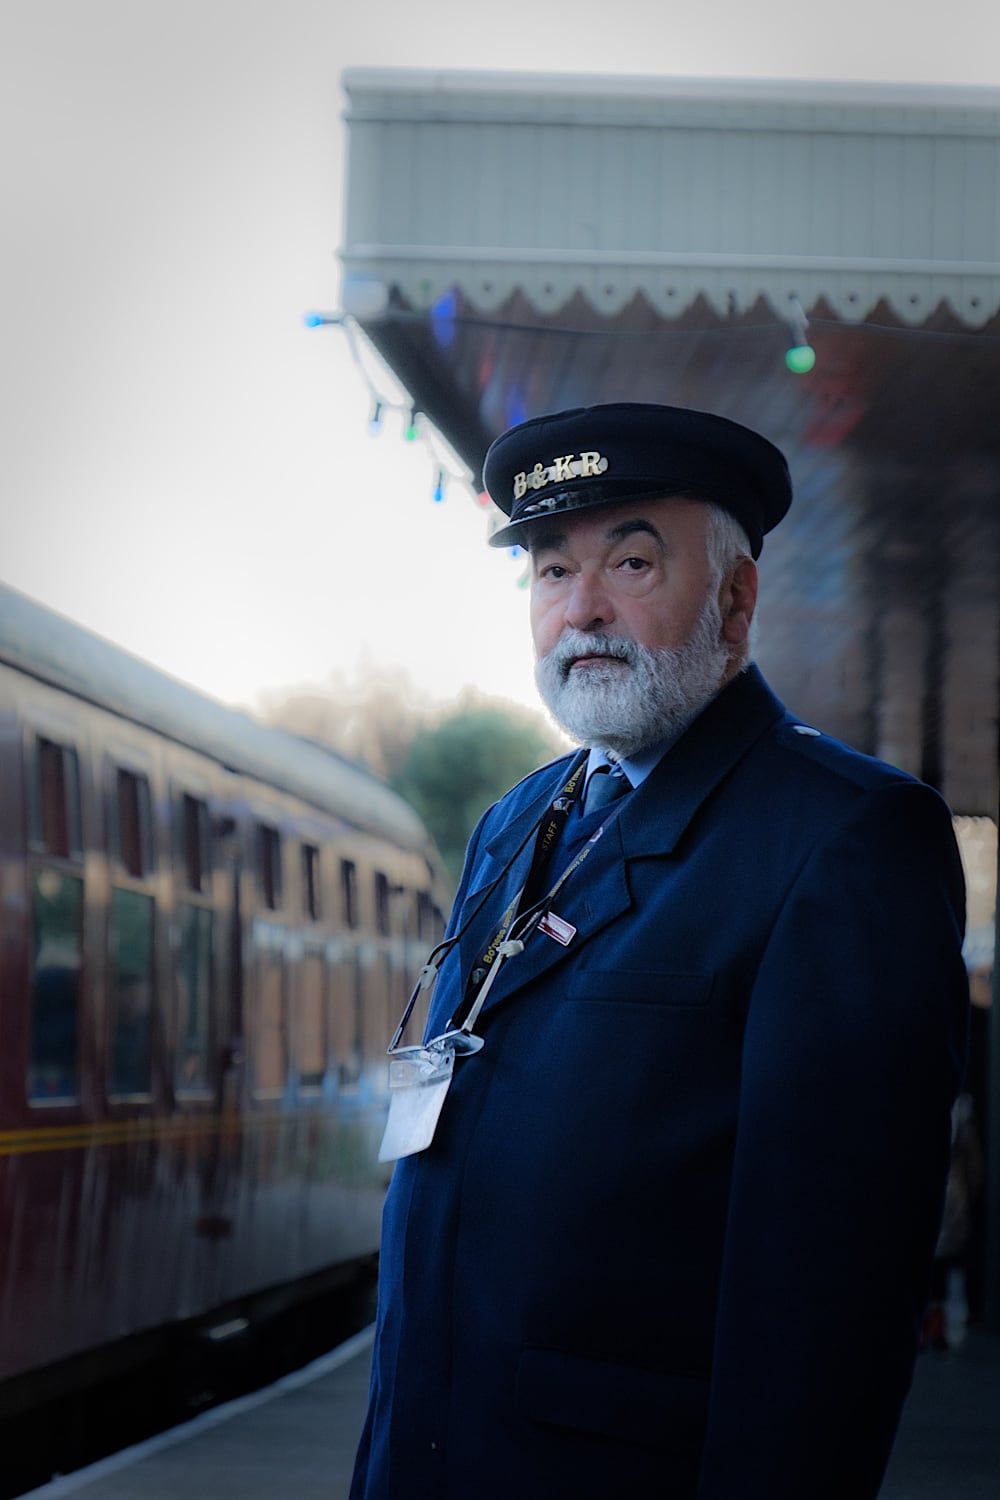 A bearded man in old-fashioned Station Master uniform looks towards the camera on the platform, with an old style train carriage in the background.